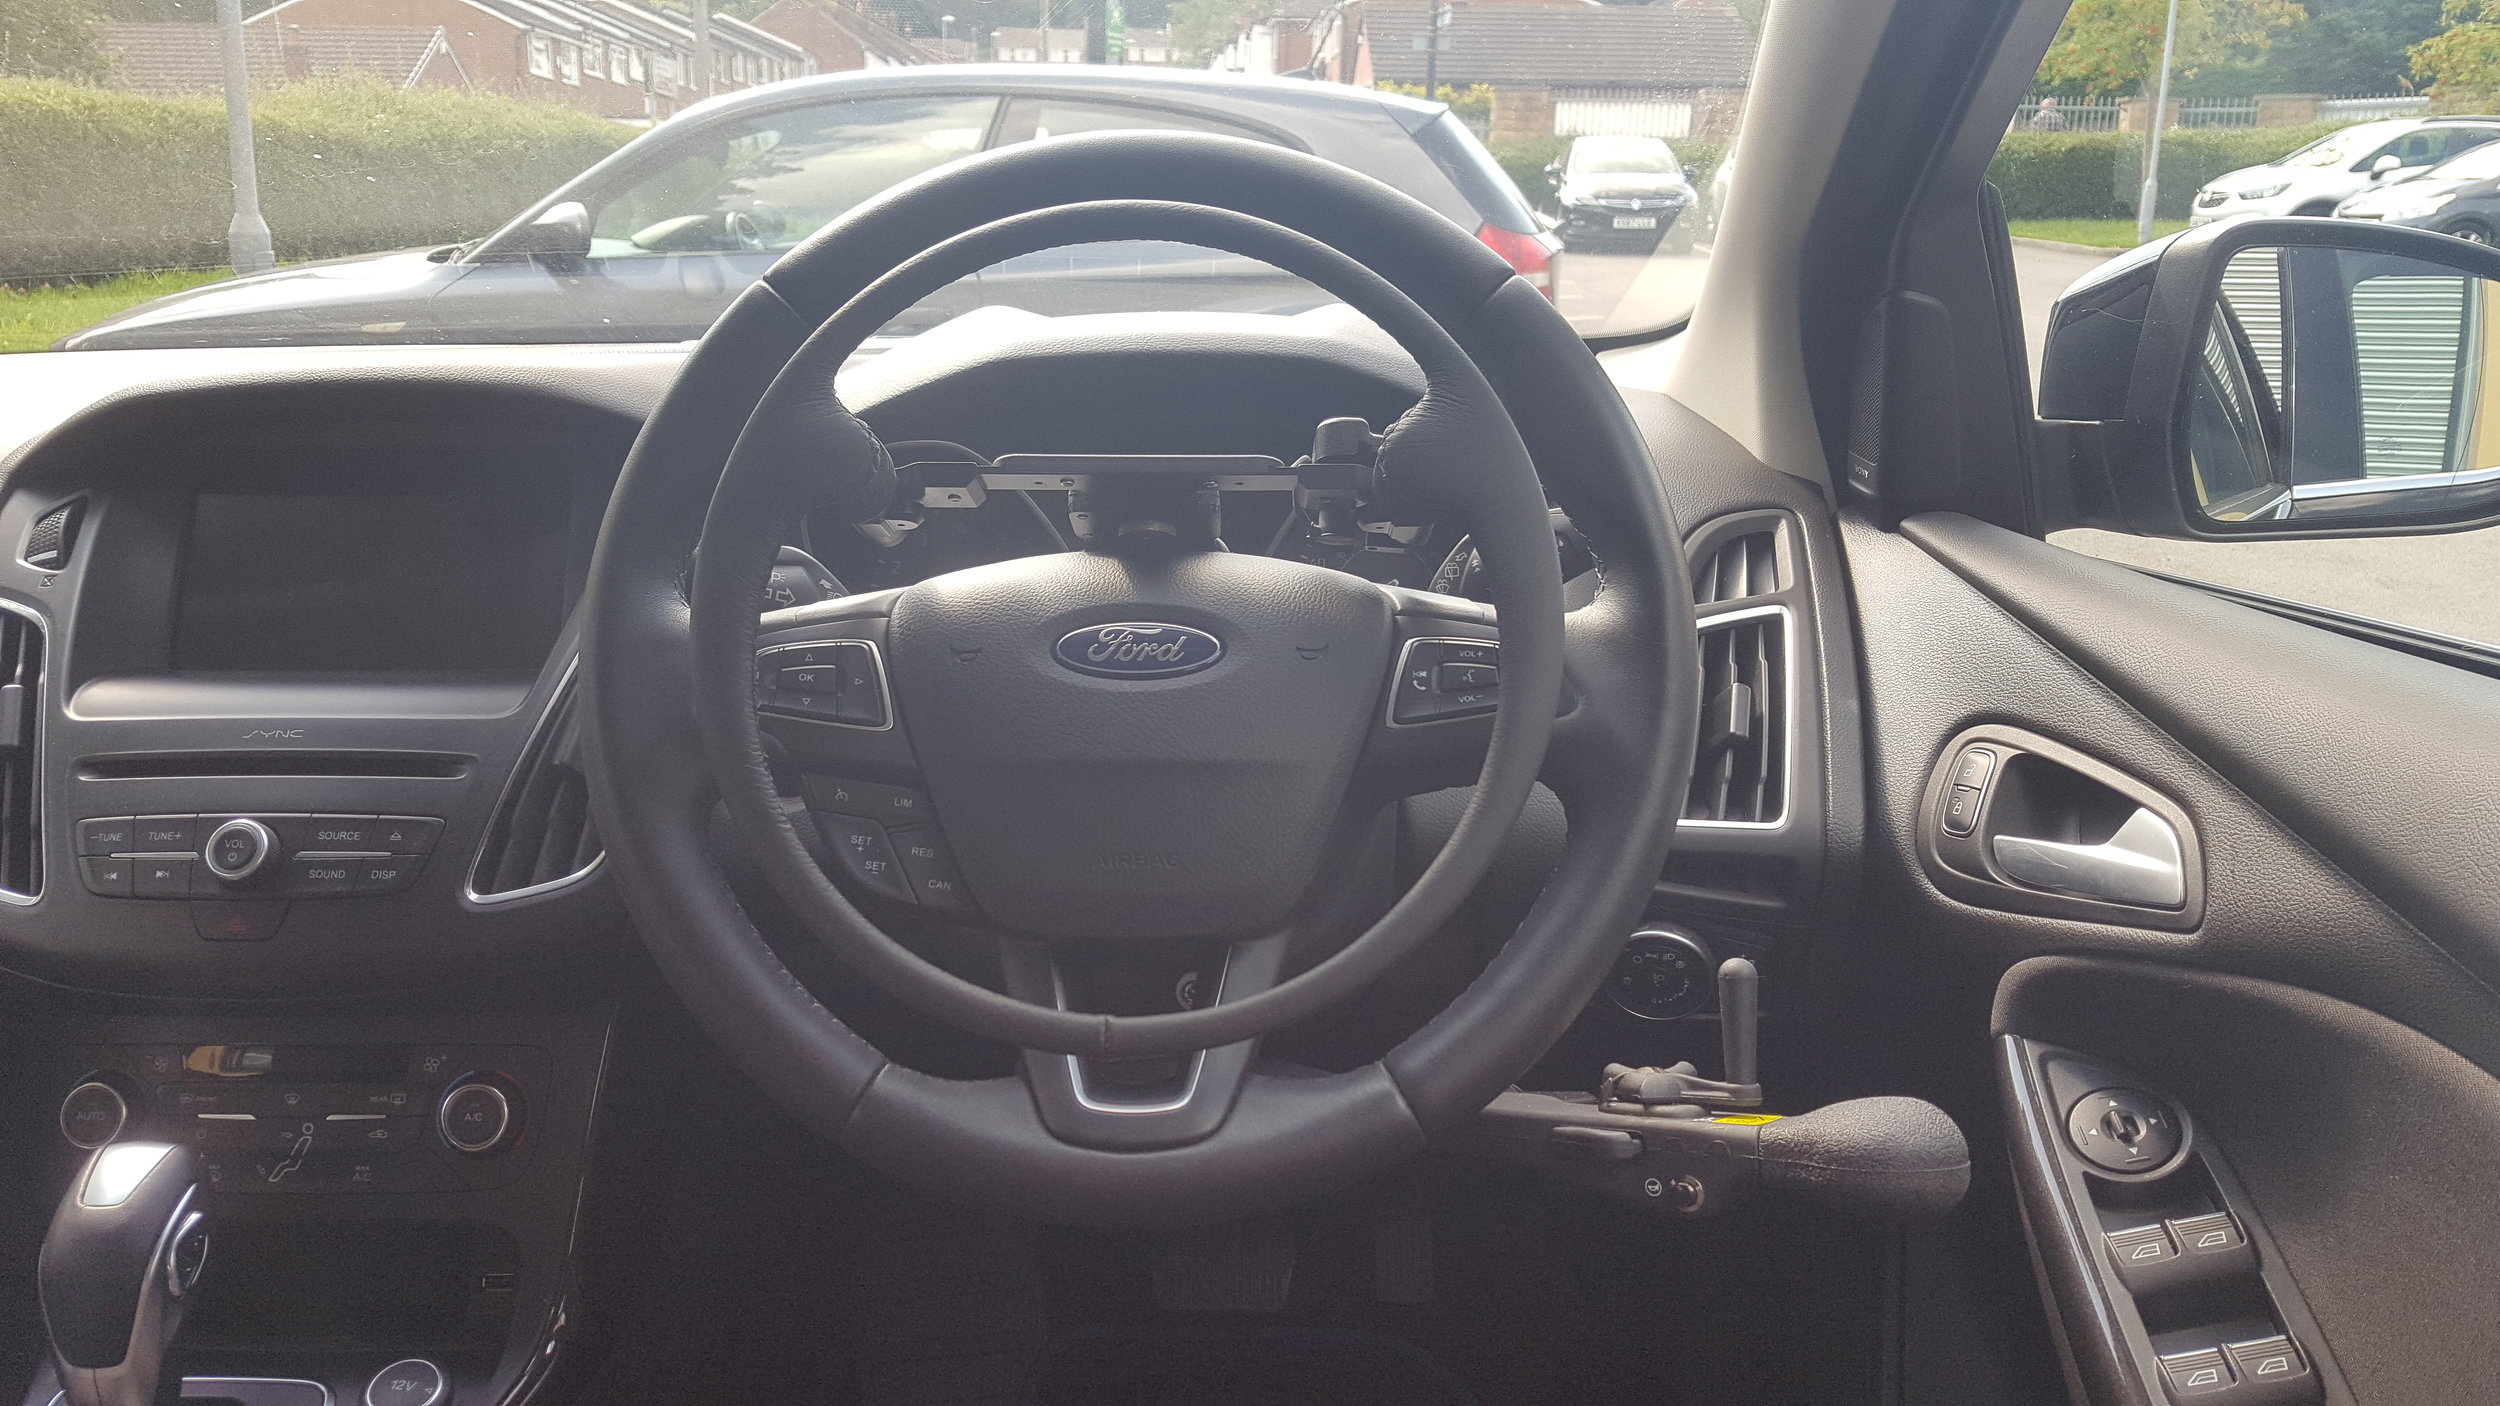 Ford Focus Auto with Electronic Over-ring Accelerator and Push Brake Lever.jpg